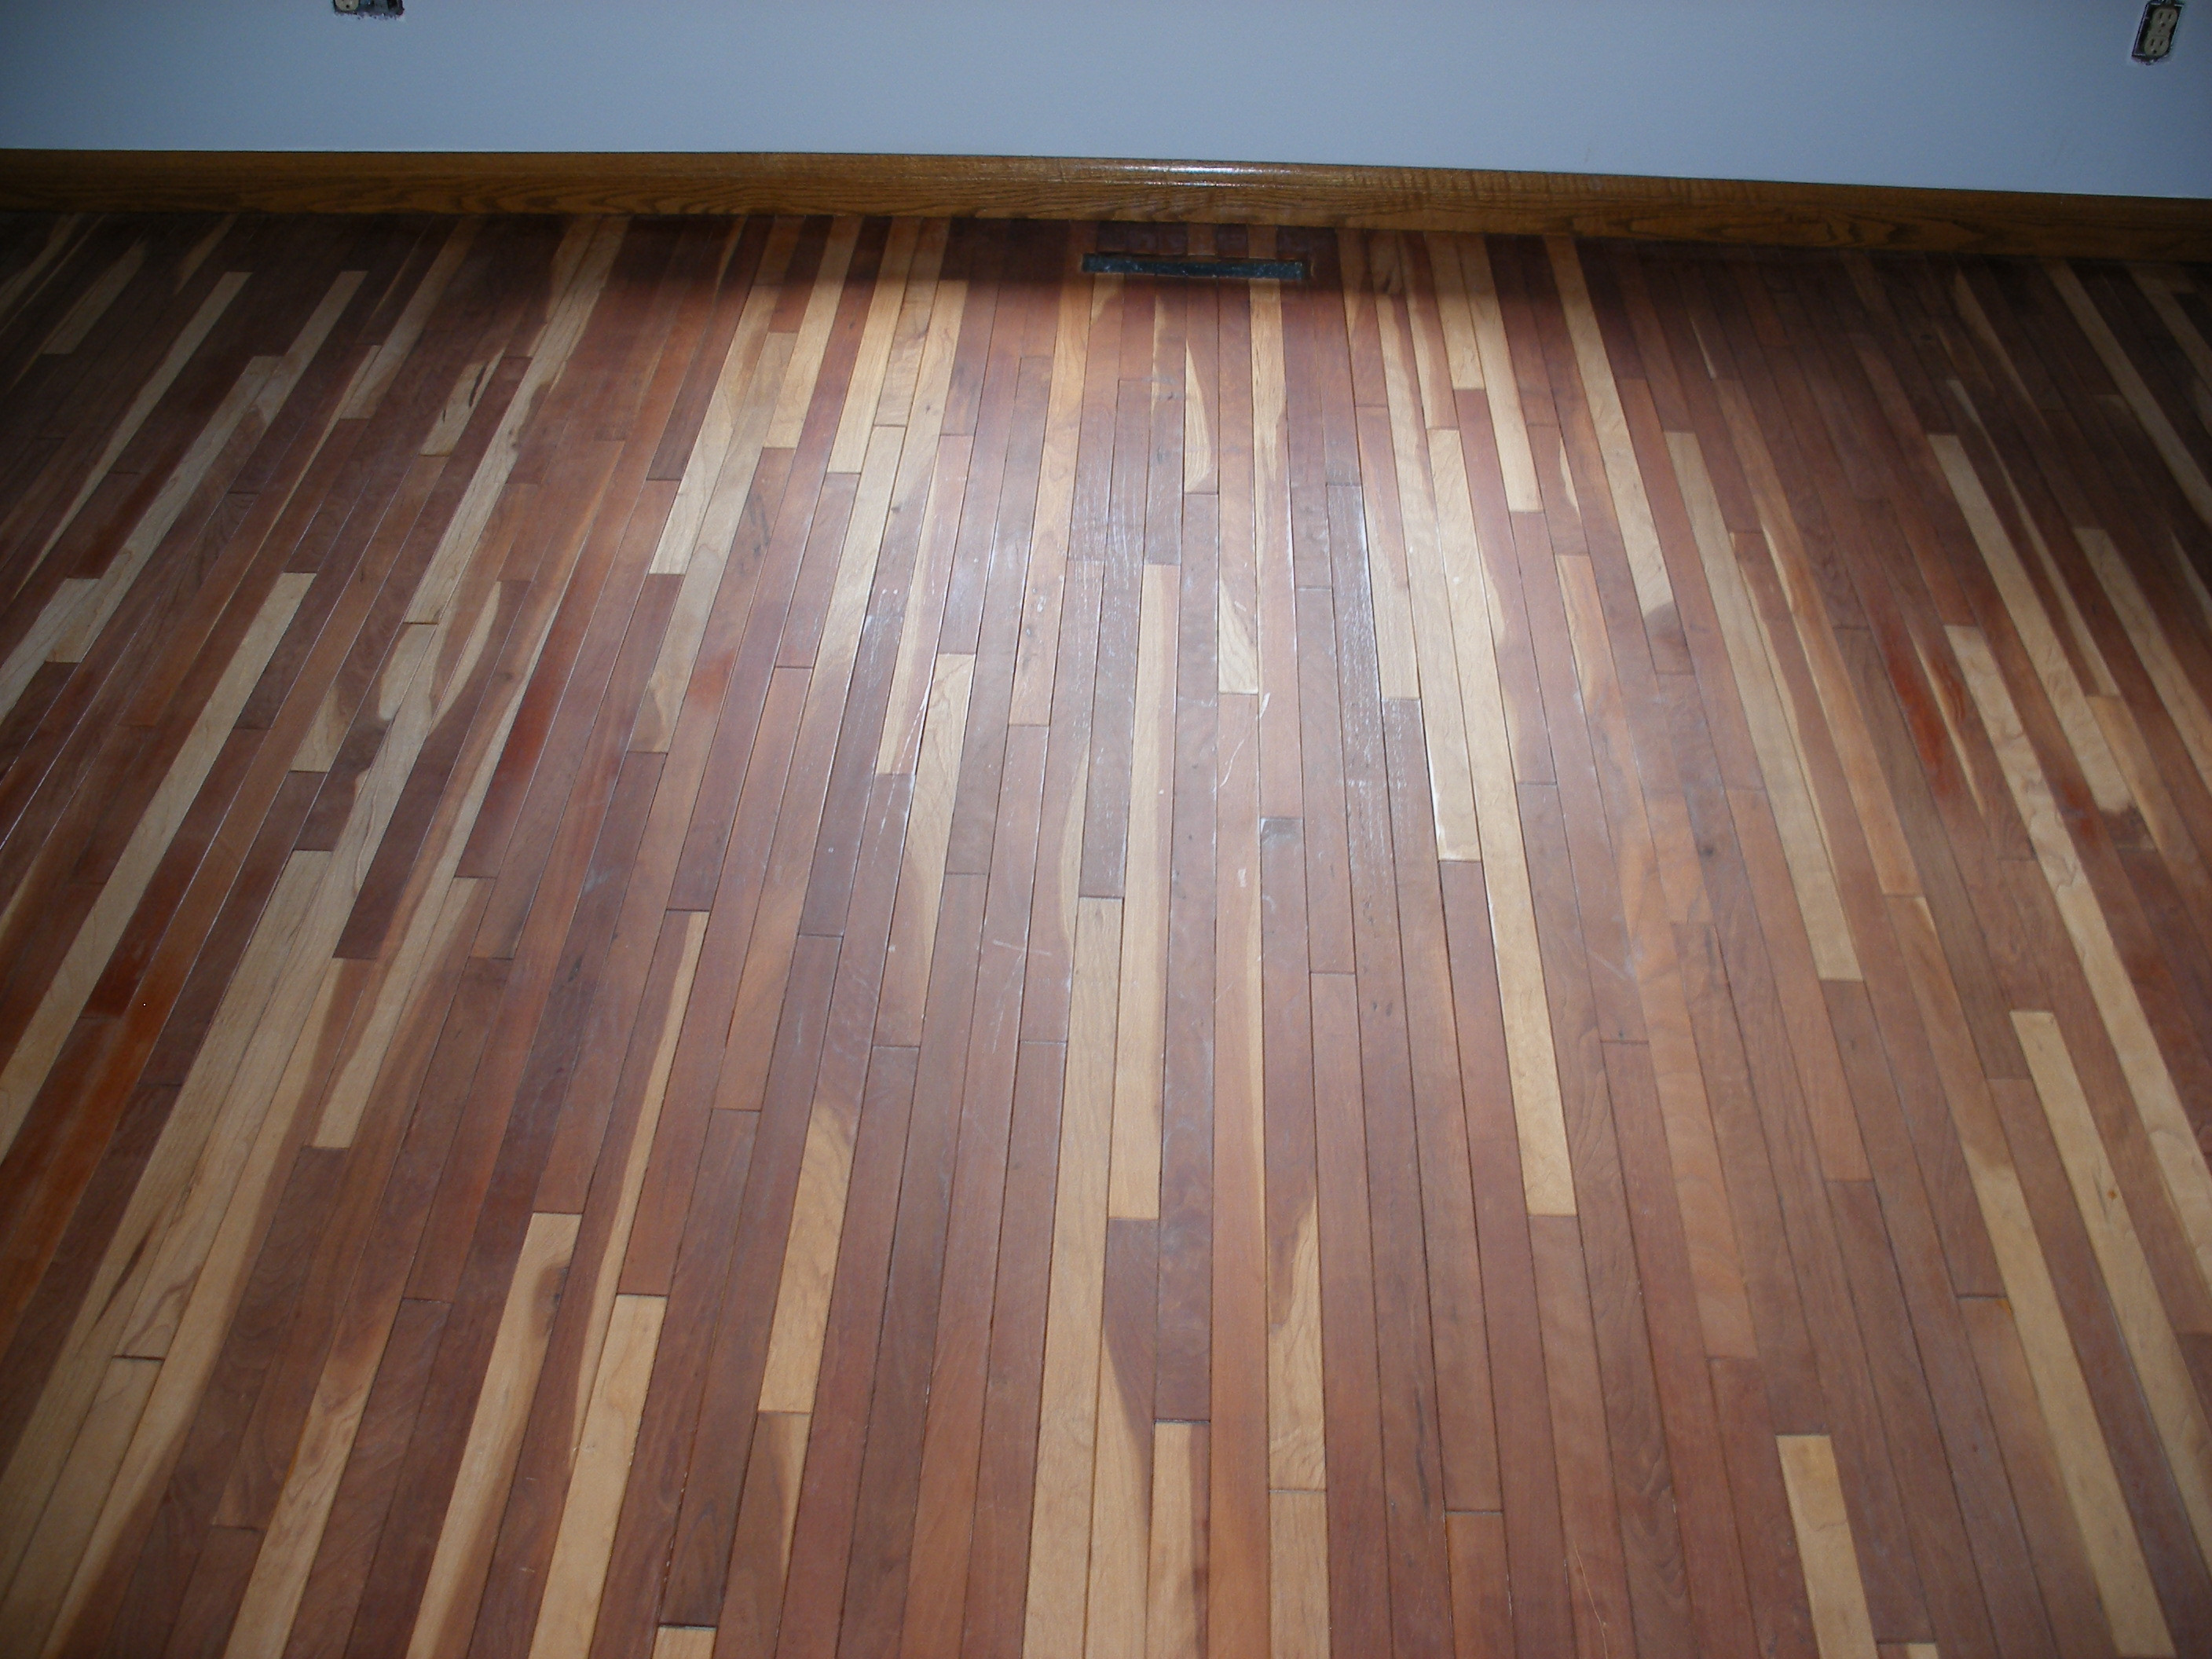 refinishing hardwood floors how long does it take of diy refinish hardwood floors 50 best refinished hardwood floors with diy refinish hardwood floors no sand wood floor refinishing in northwest indiana hardwood floors